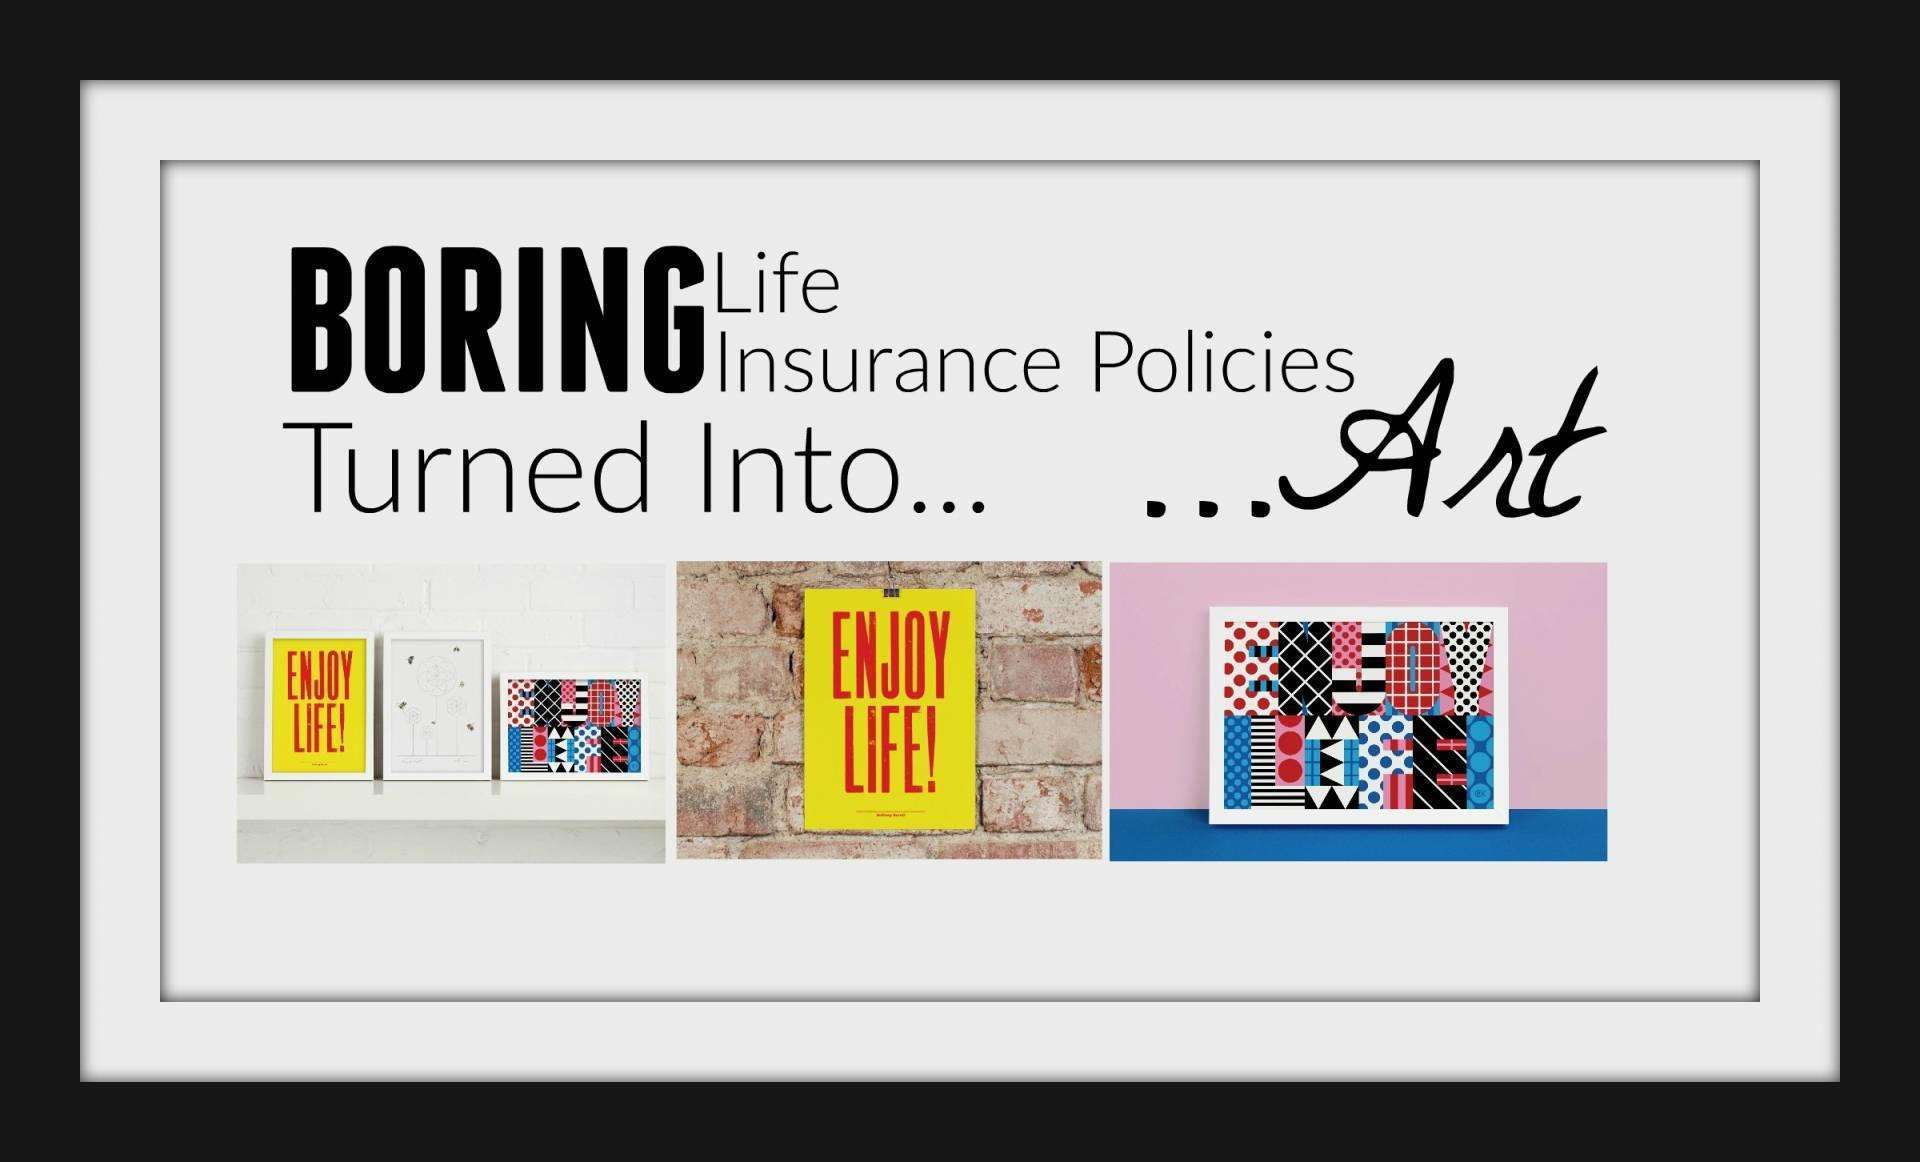 Boring Life Insurance Policies Turned into Art, Life insurance art featured1%, new-dad%